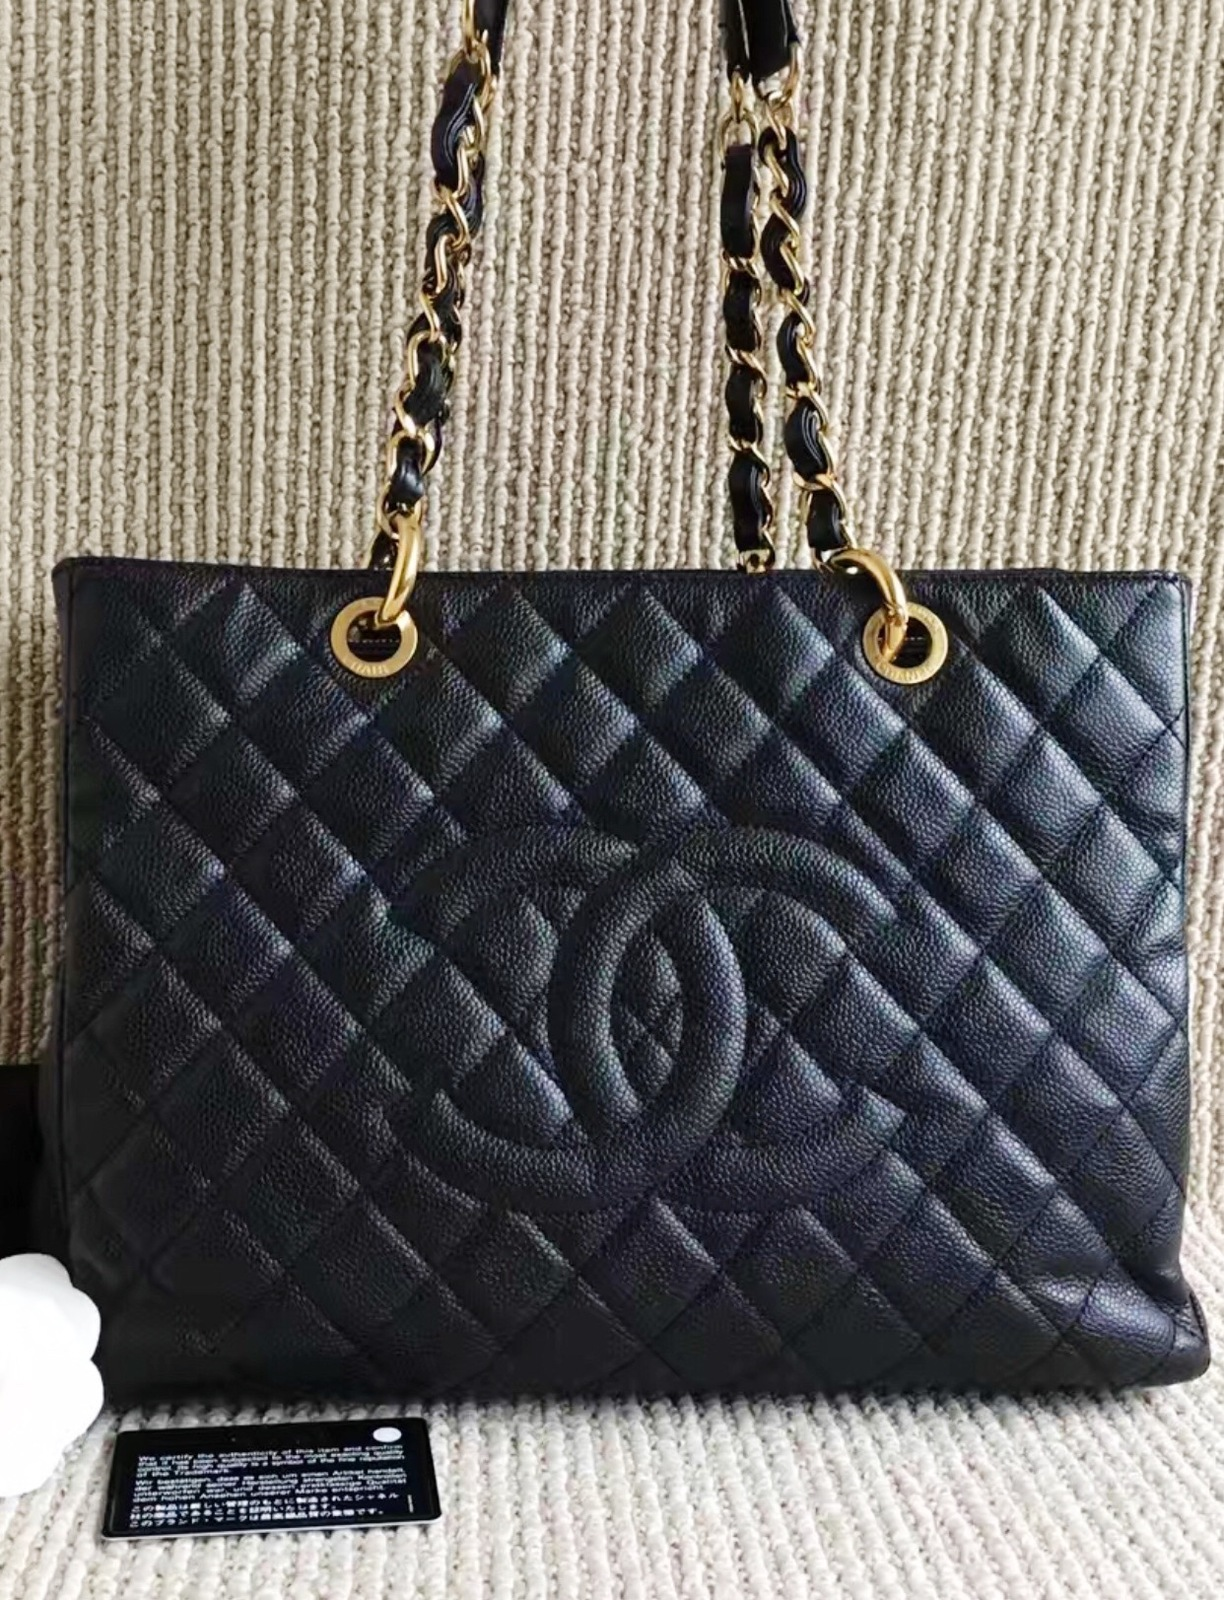 100% AUTHENTIC CHANEL CAVIAR GST GRAND SHOPPING TOTE BAG BLACK GHW